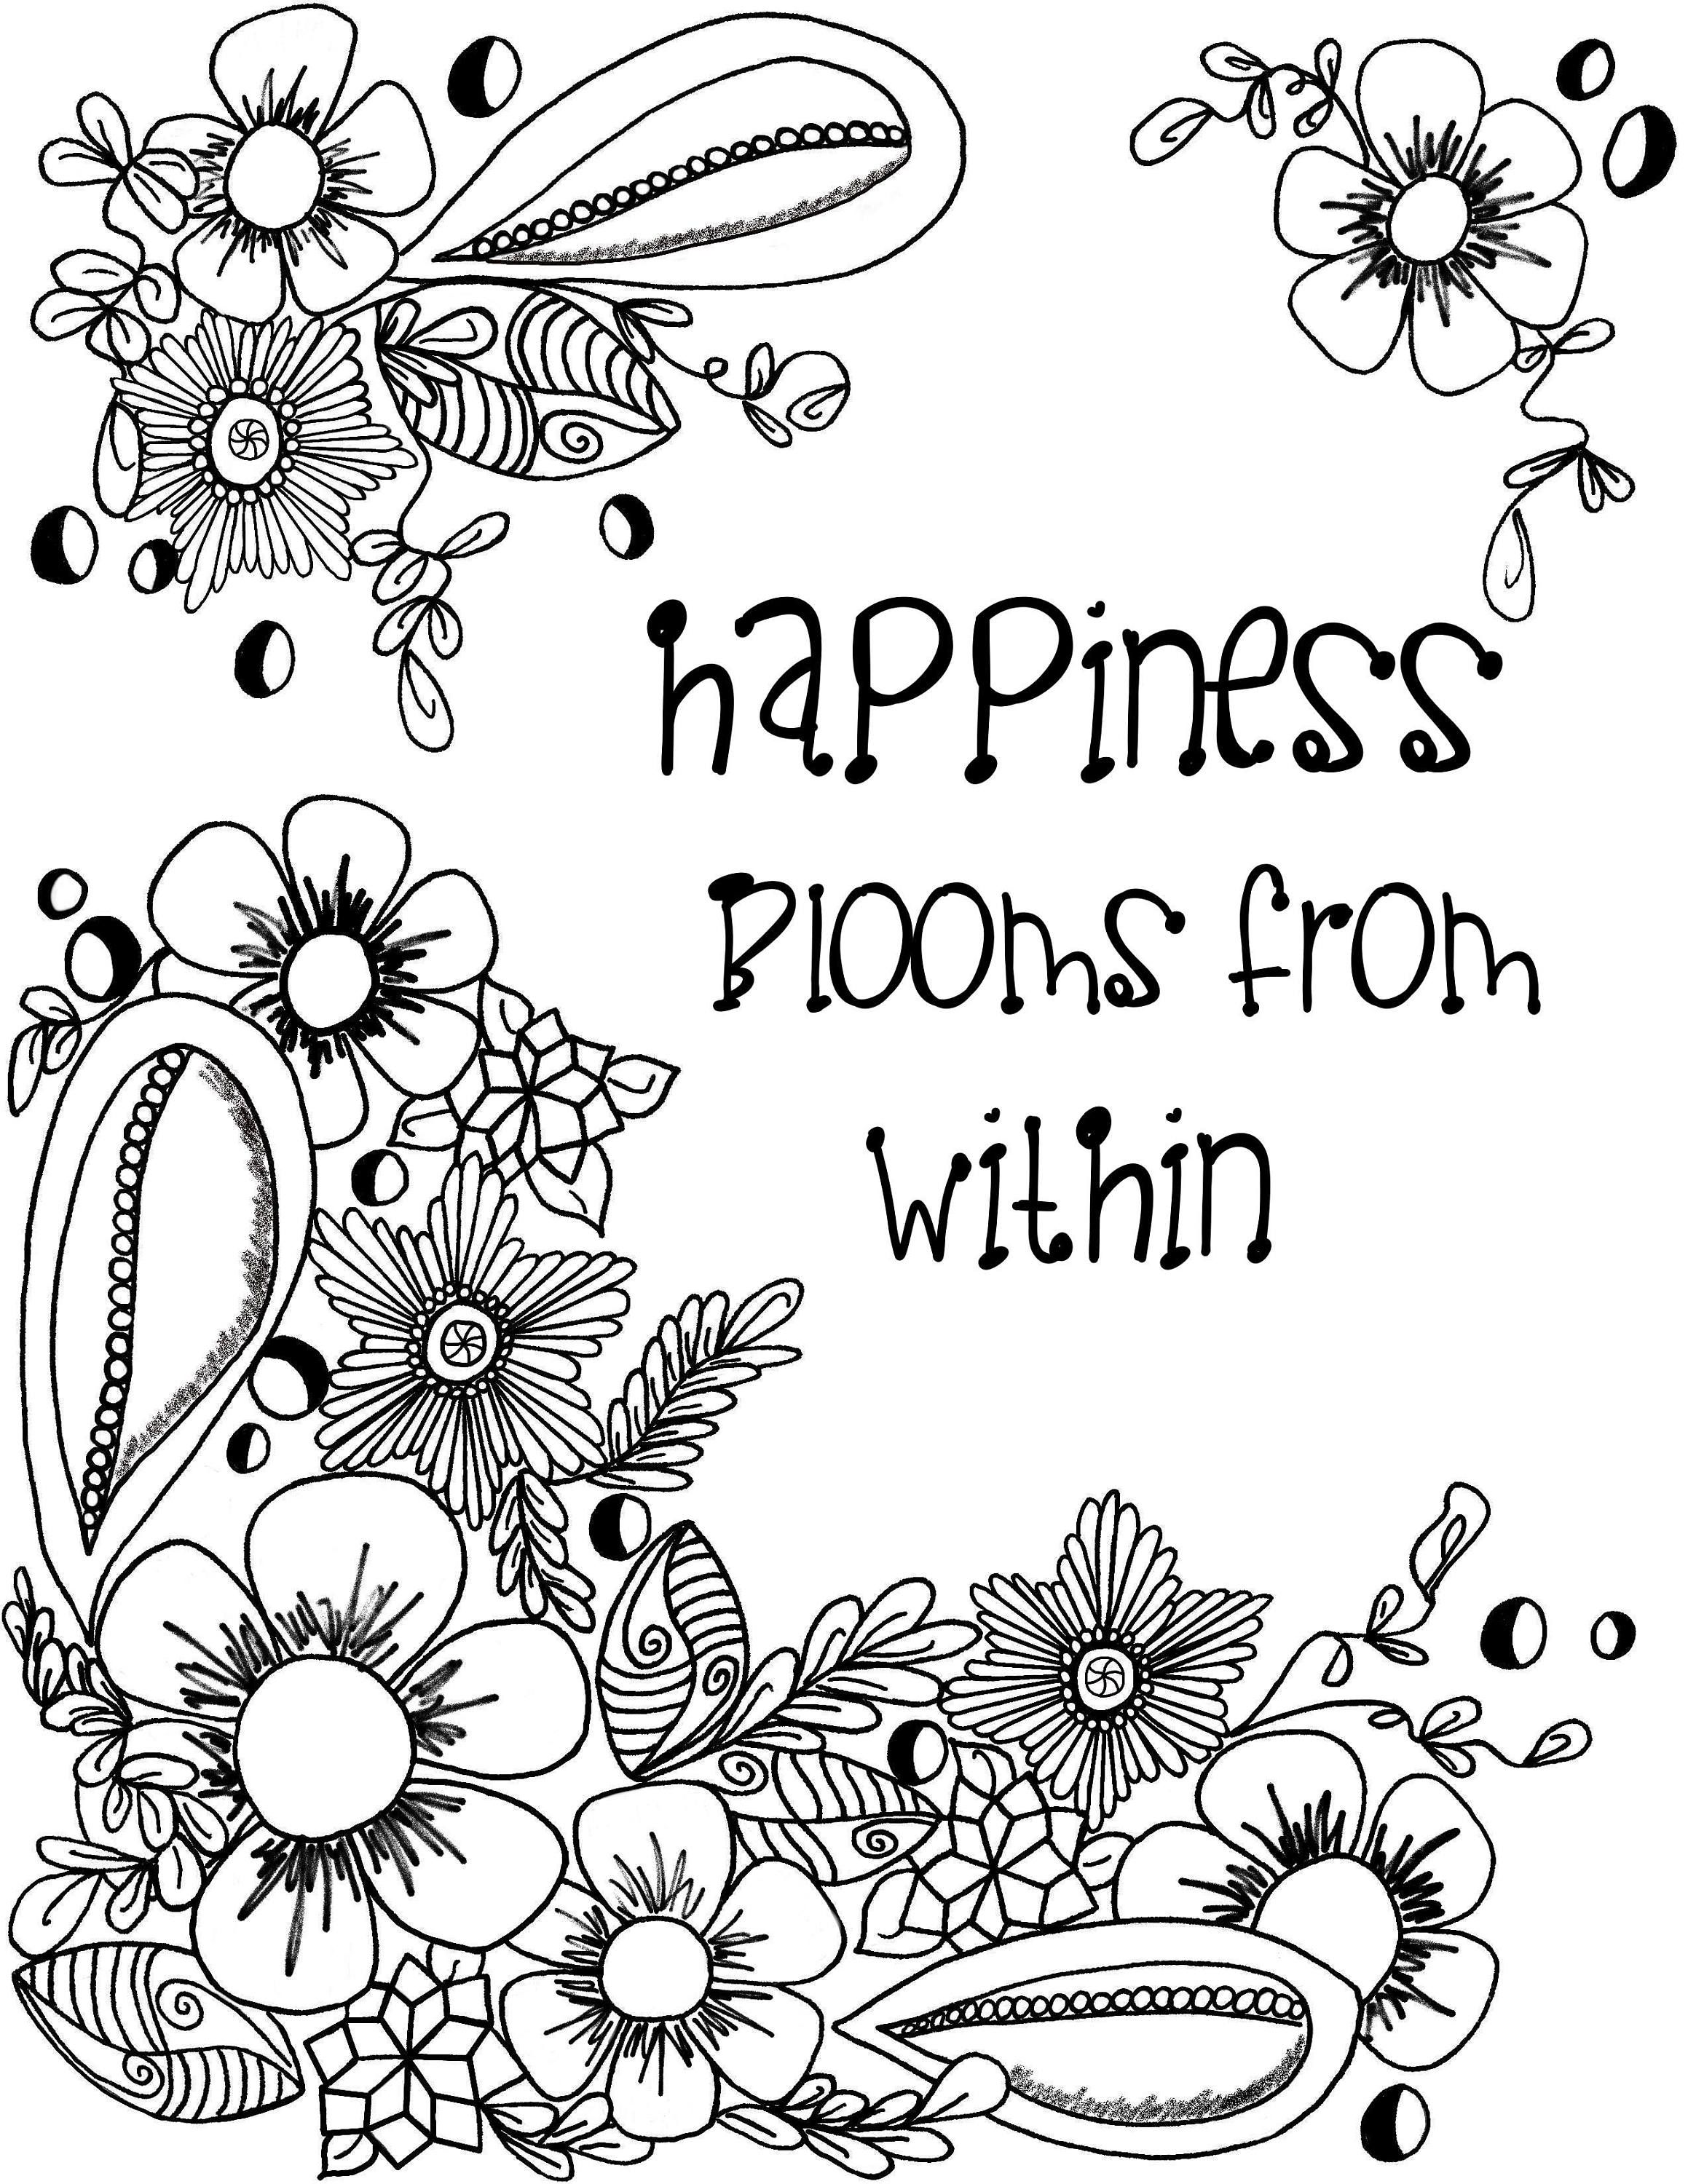 Coloring Page Digital Download With Inspirational Quotes